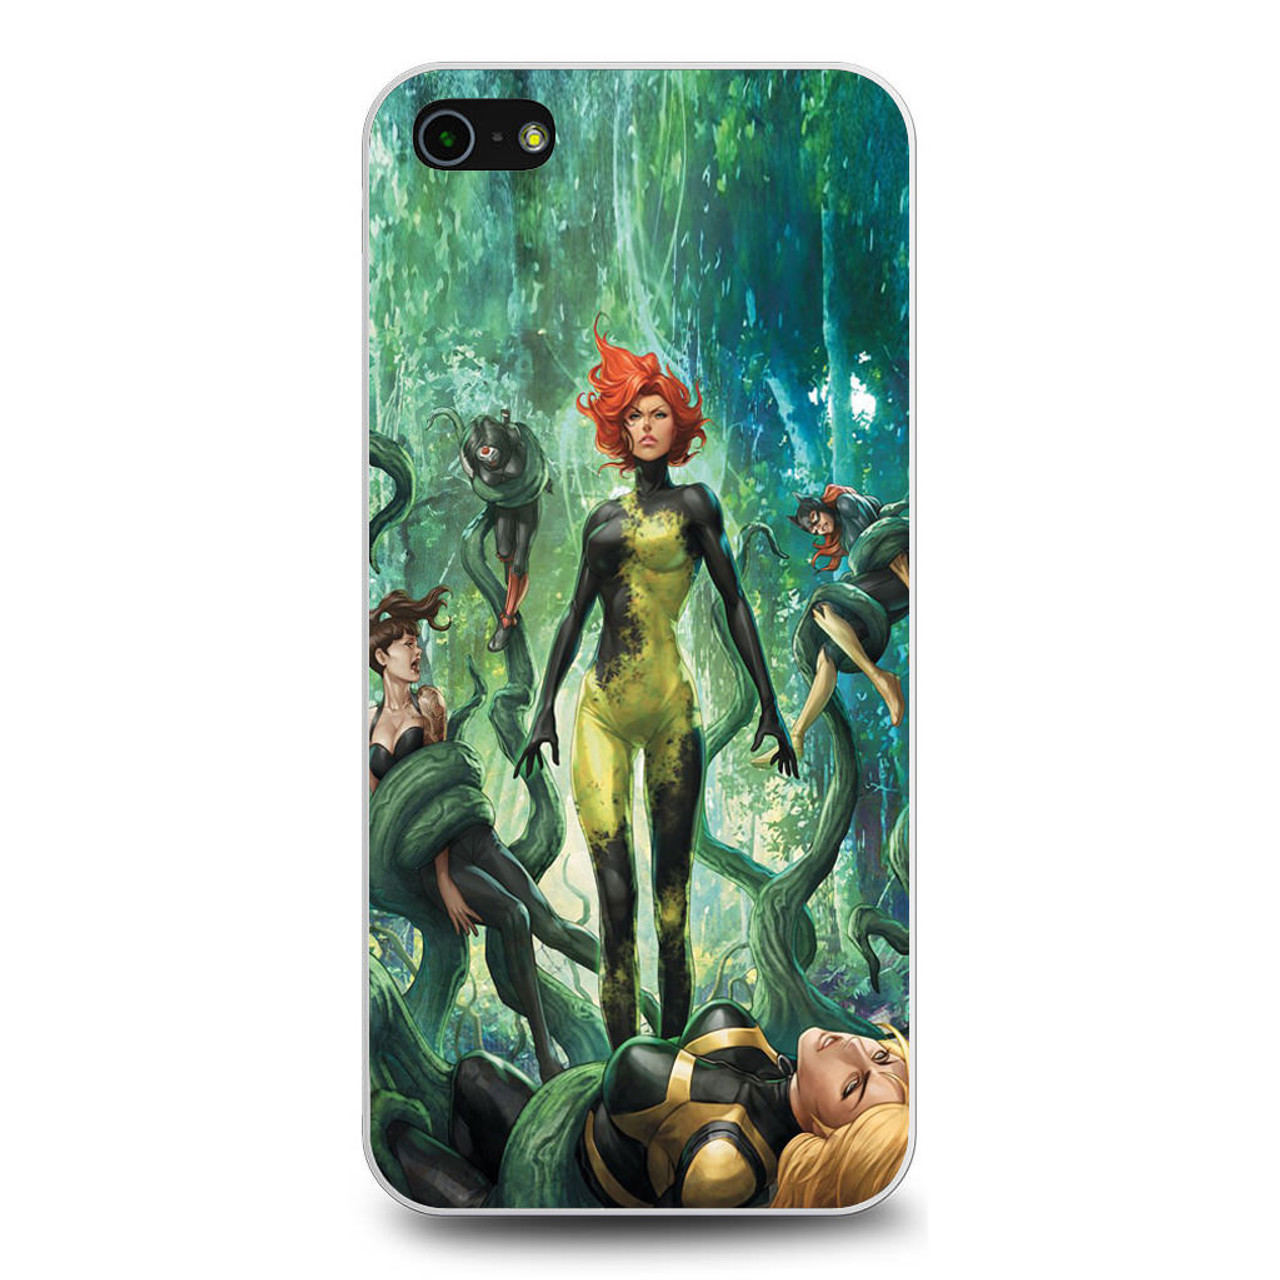 Ivy Robin 2 iphone case